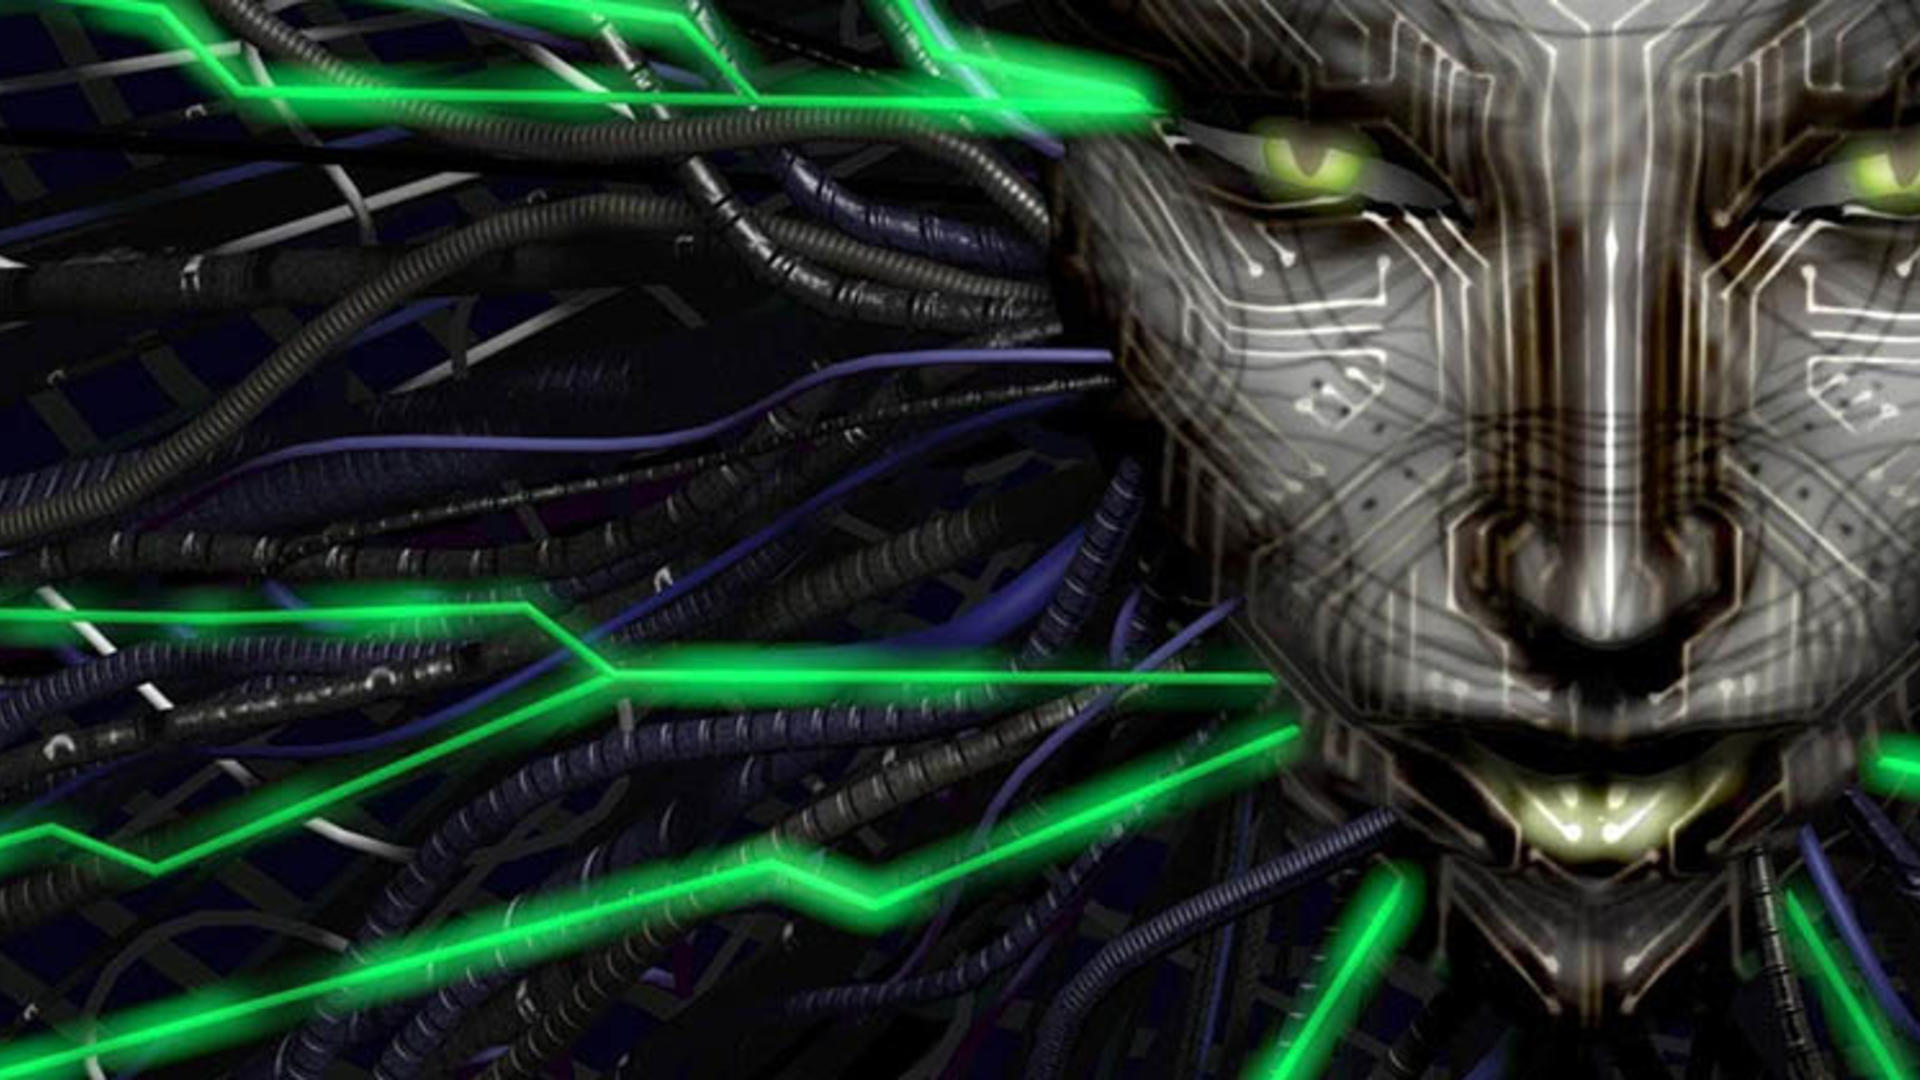 System Shock 2: Enhanced Edition is now in development